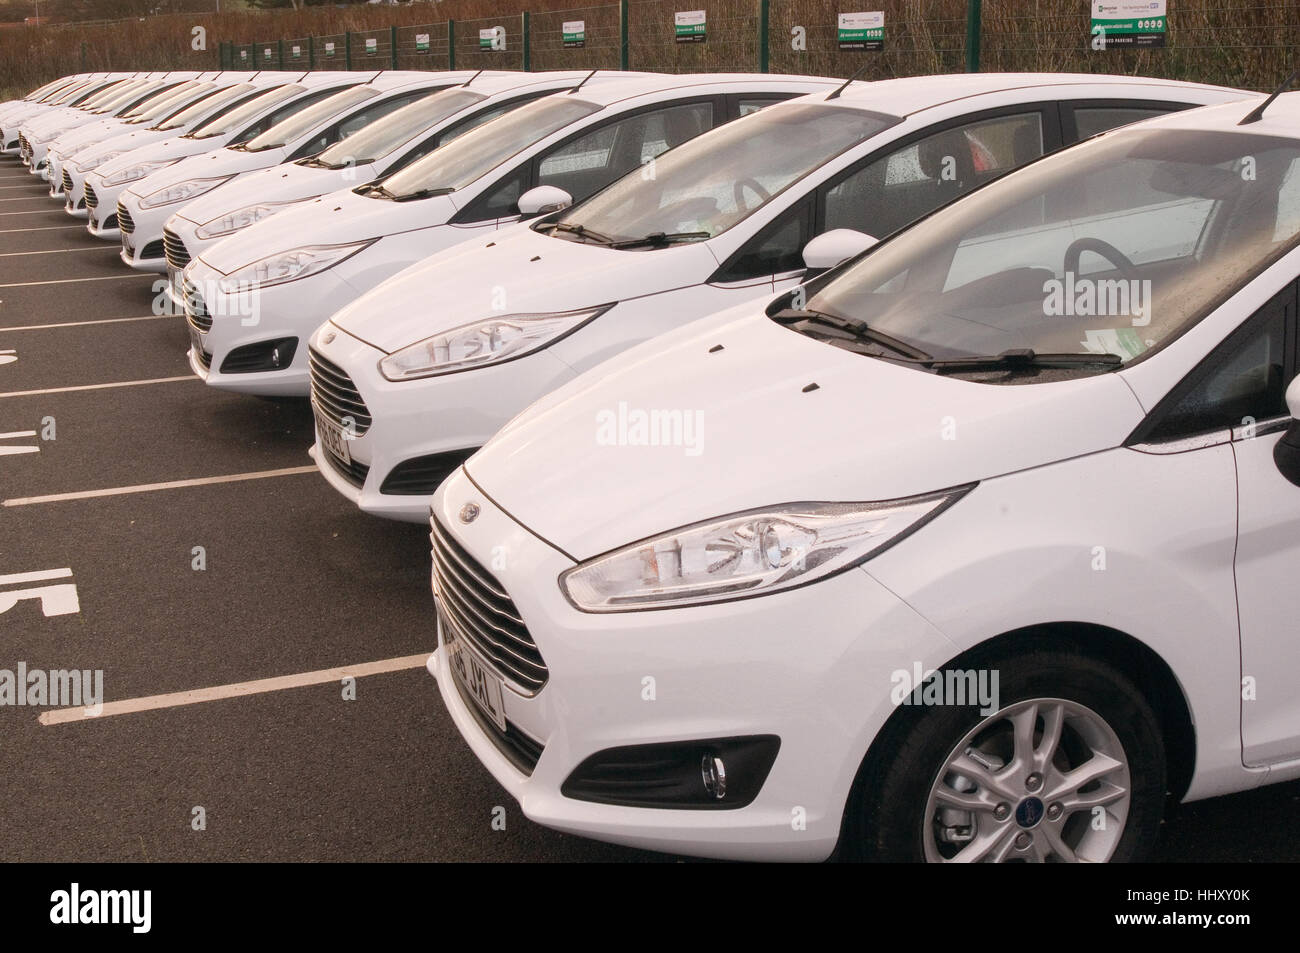 rental car cars rented rent companies company new ford fiesta fiestas - Stock Image